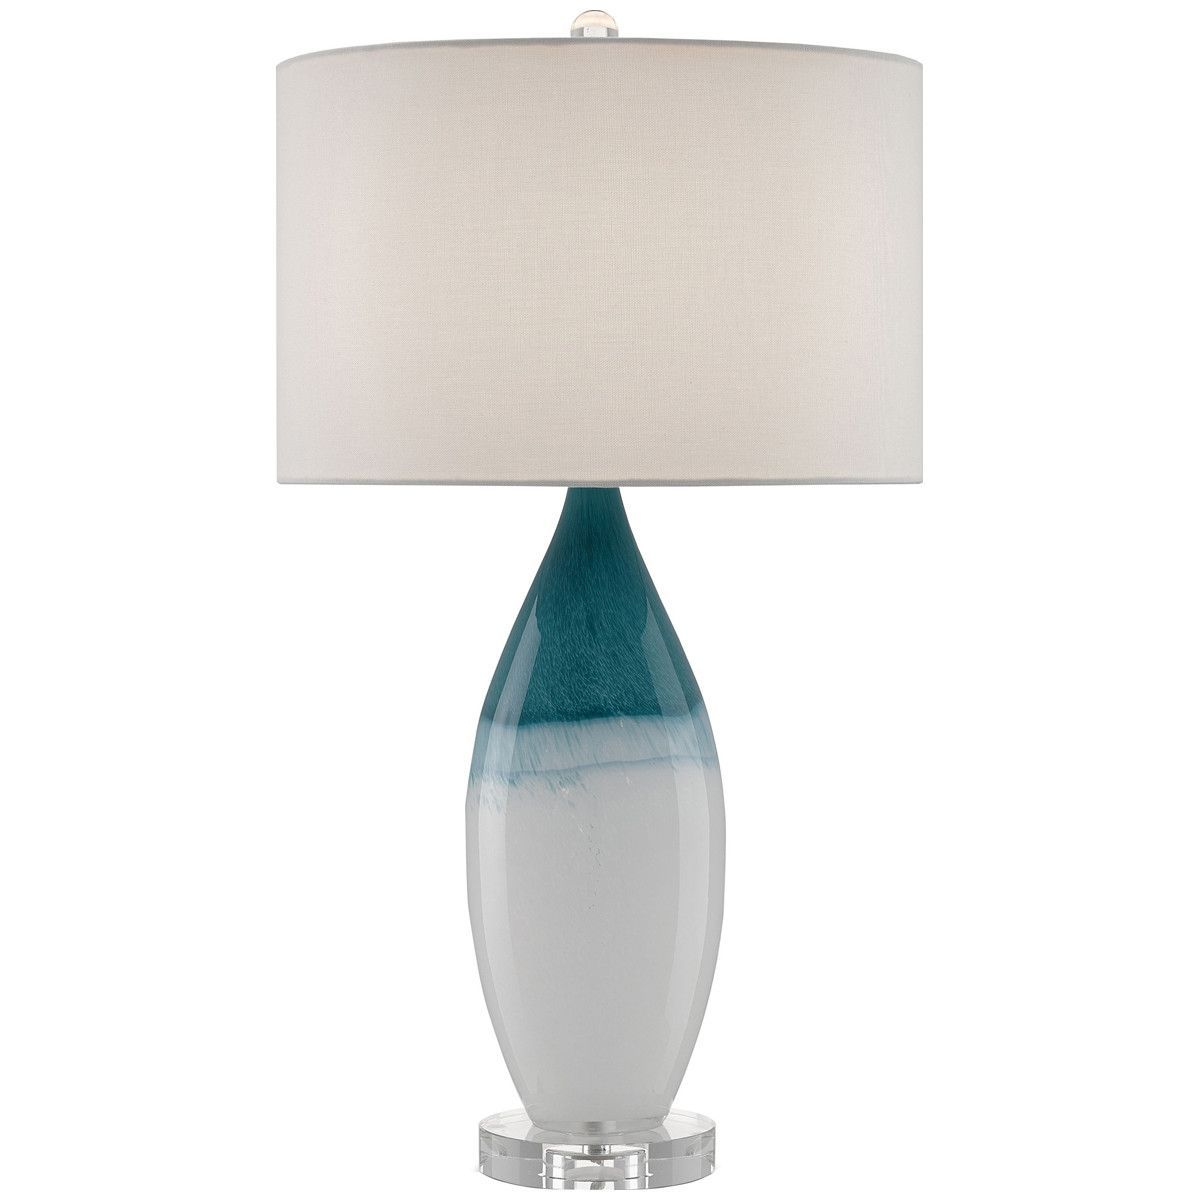 Currey and Company Julien Table Lamp